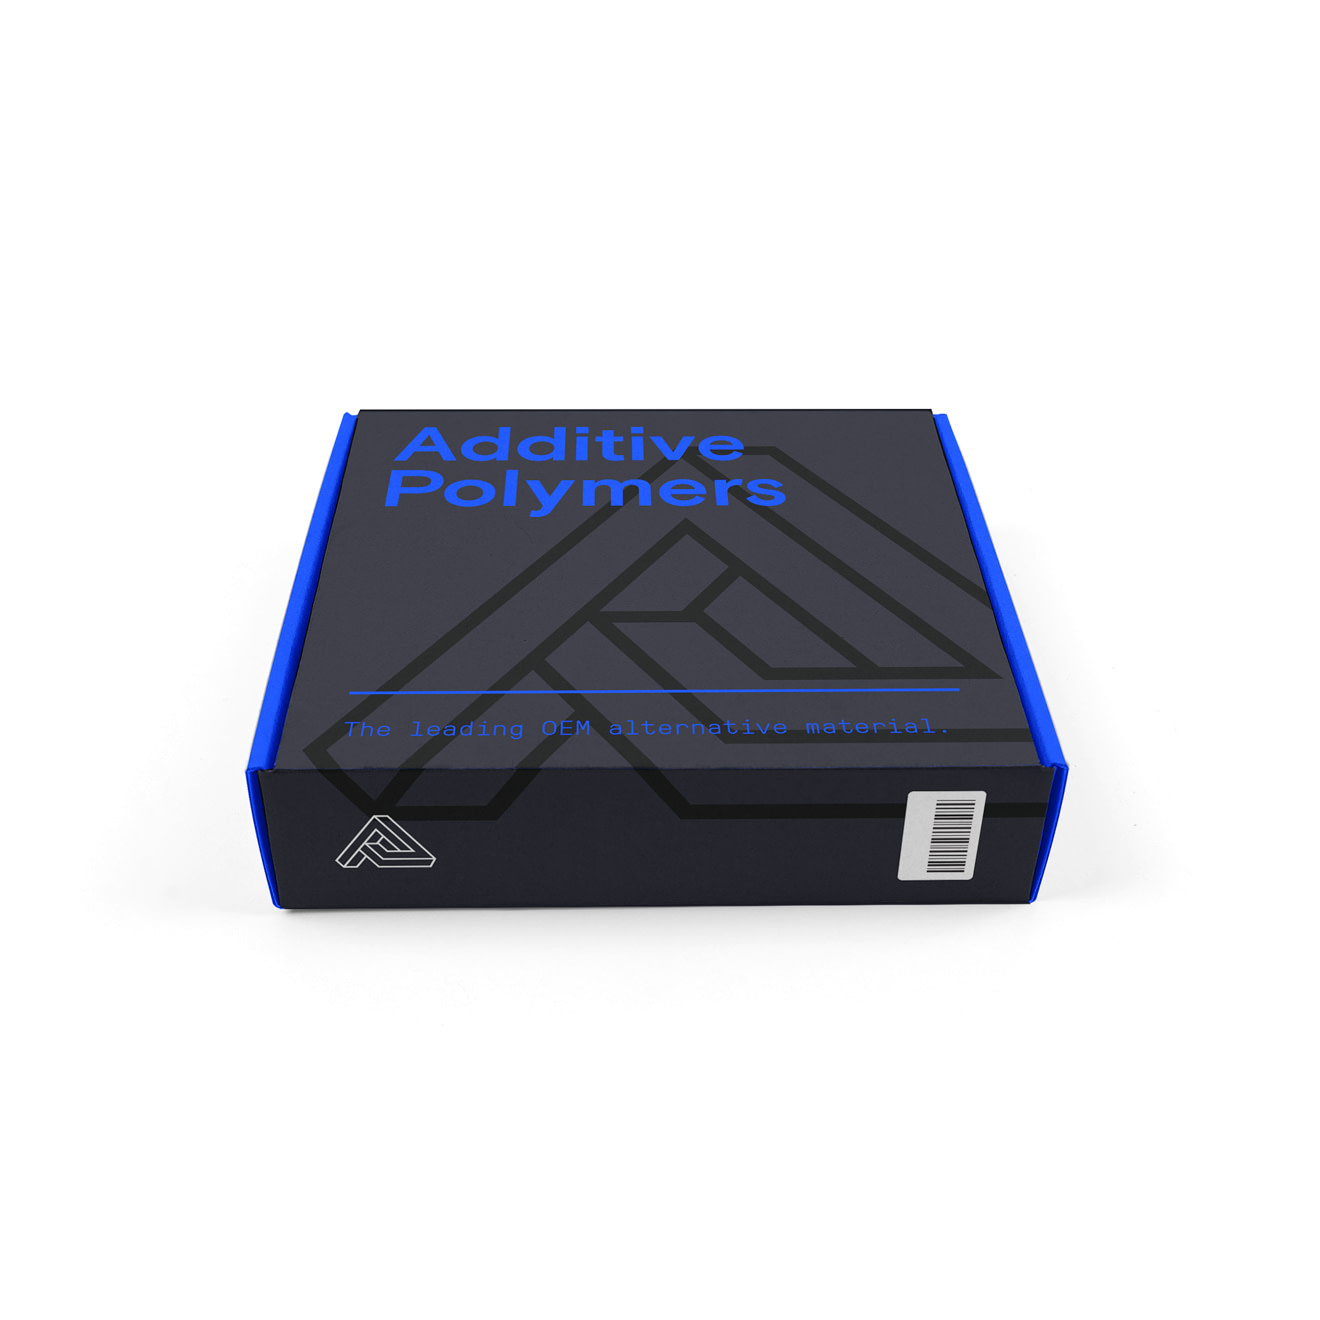 Bright blue and black box packaging for an Additive Polymers spool